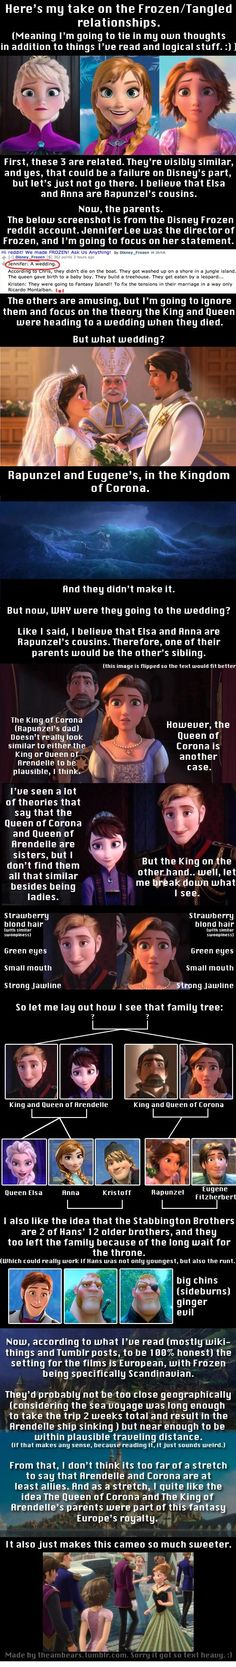 OMG I love these theories: Tangled and Frozen together! :) idk if it's true but it's still a good laugh!